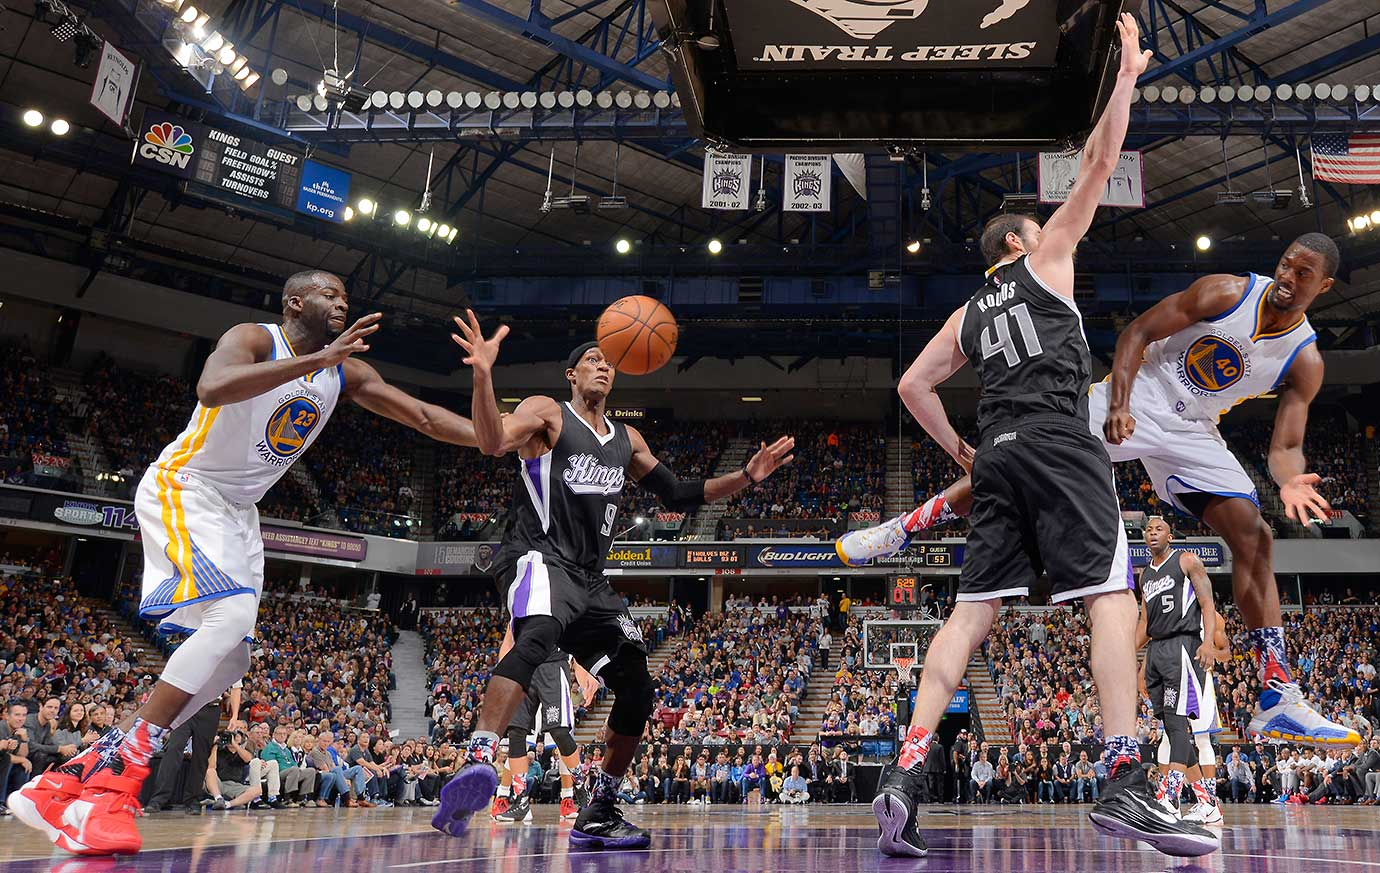 Harrison Barnes of the Warriors passes against Kosta Koufos of the Sacramento Kings.